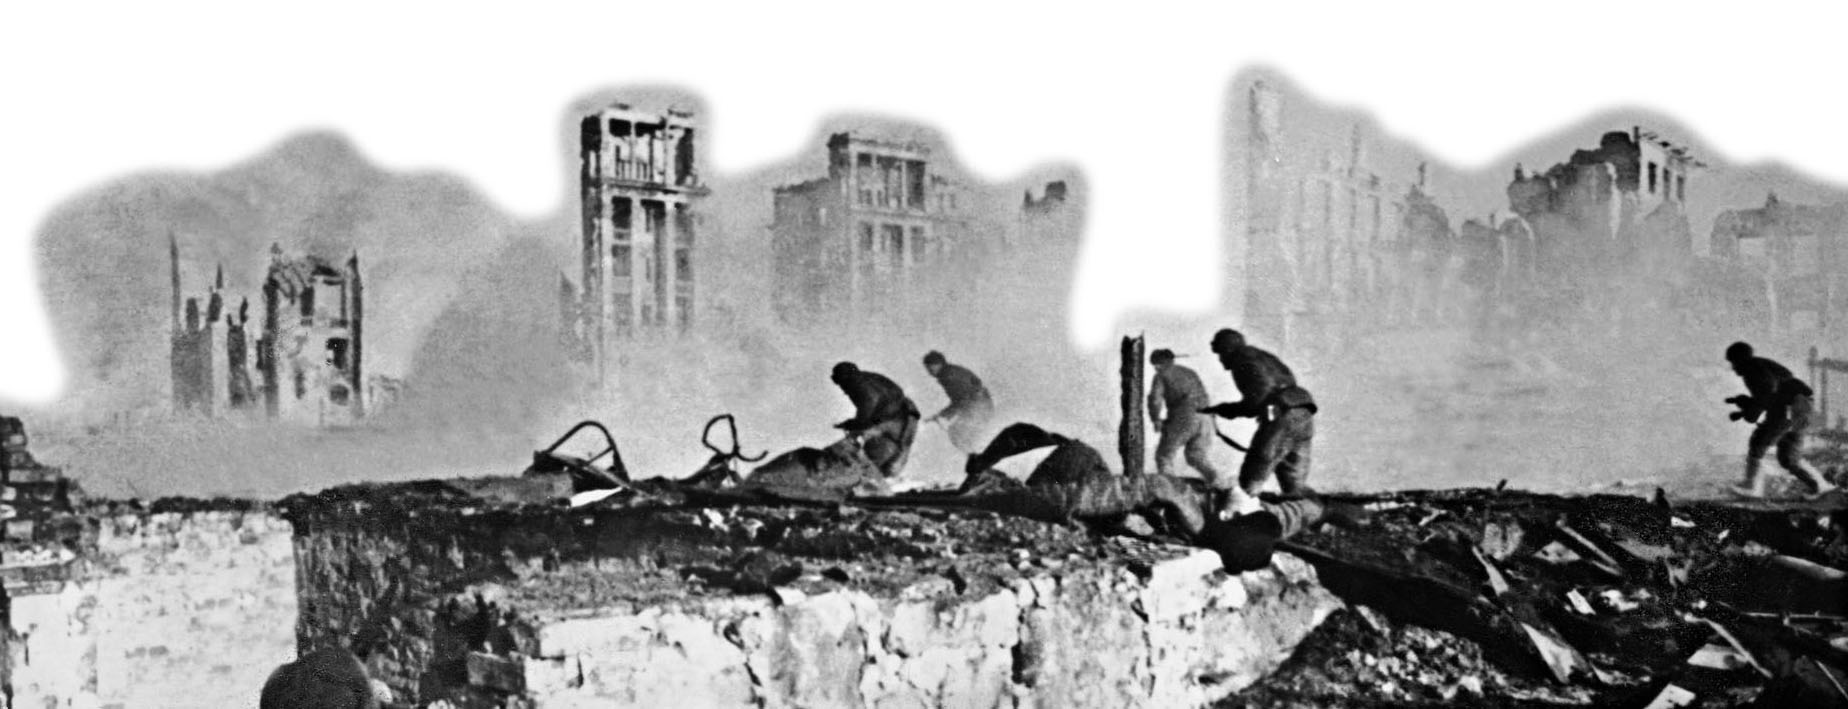 Soviet troops battle their way forward in the ruins of Stalingrad as the Red Army tightens its grip on the city